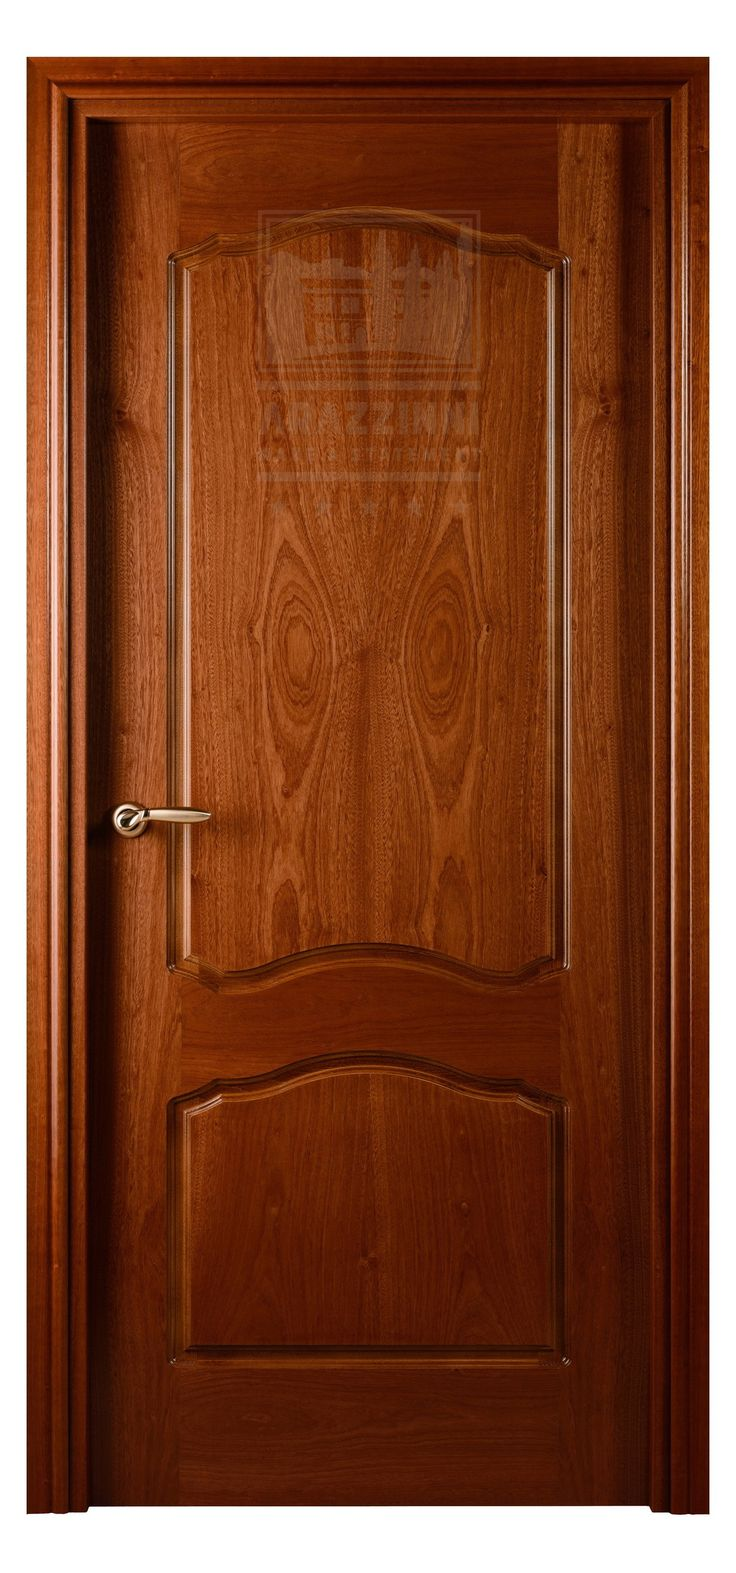 10 Best Traditional Interior Doors Images On Pinterest